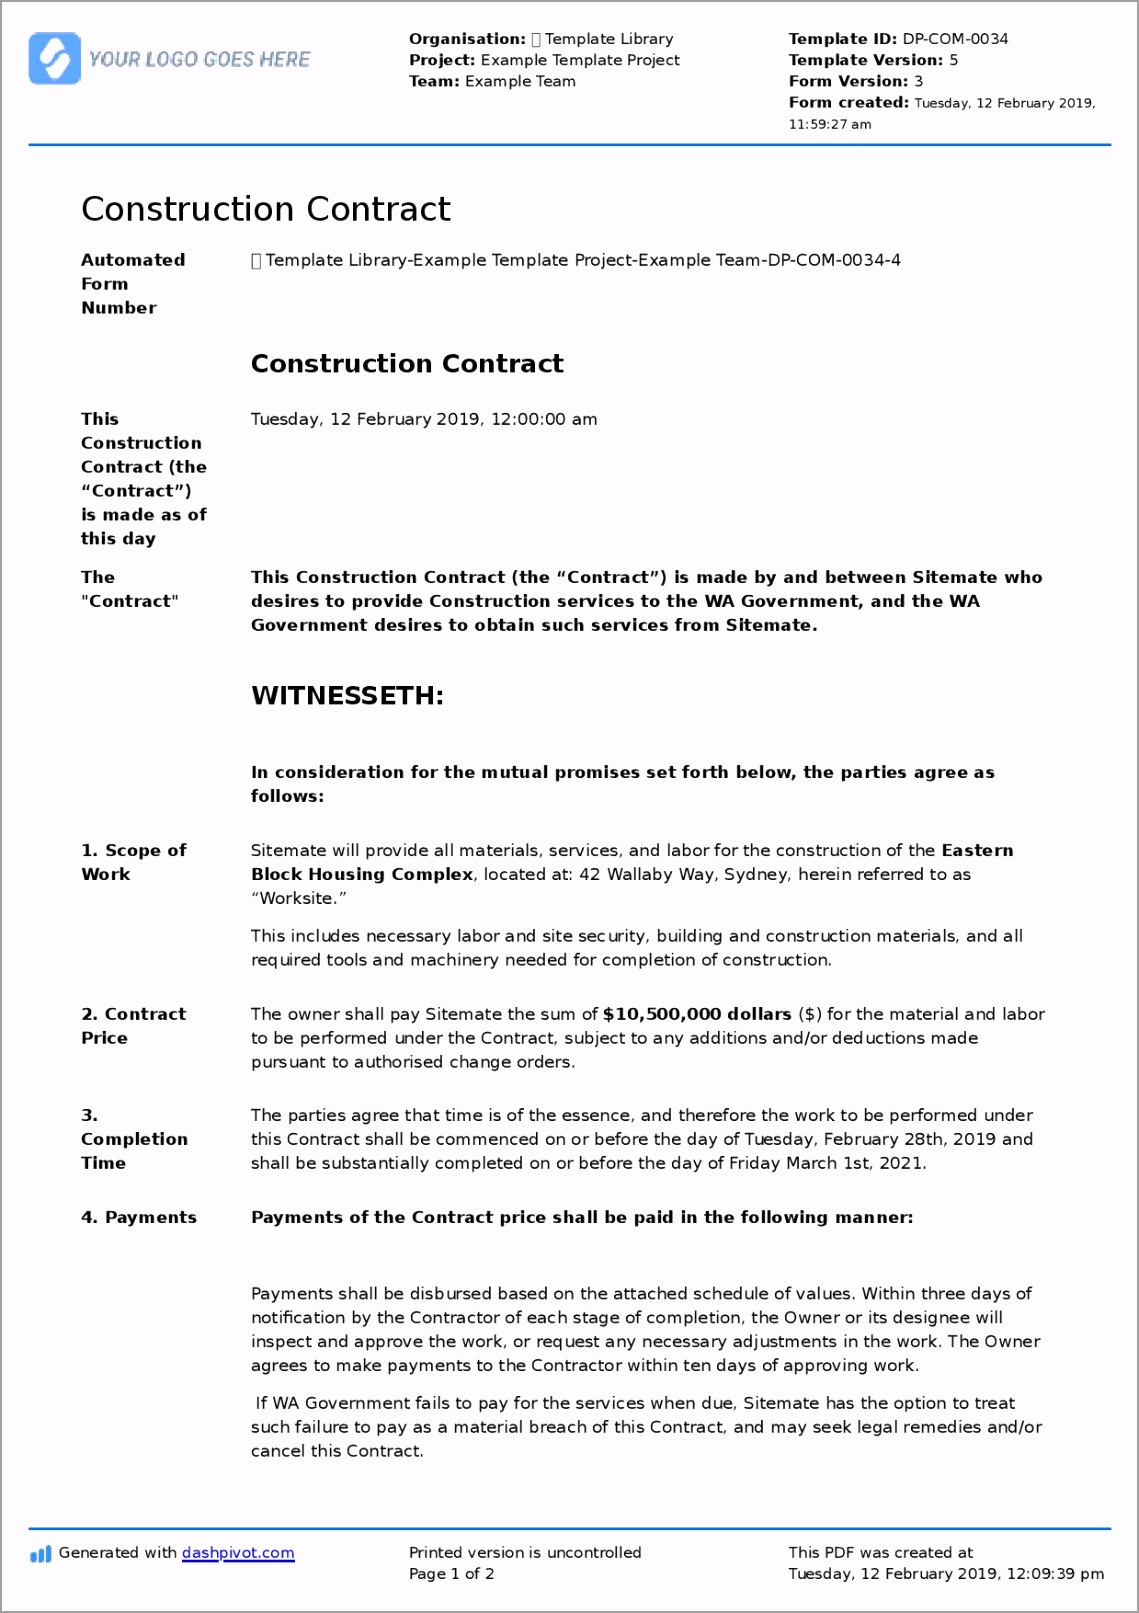 2019 1 12 Construction Contract 4 page 001 uurtr